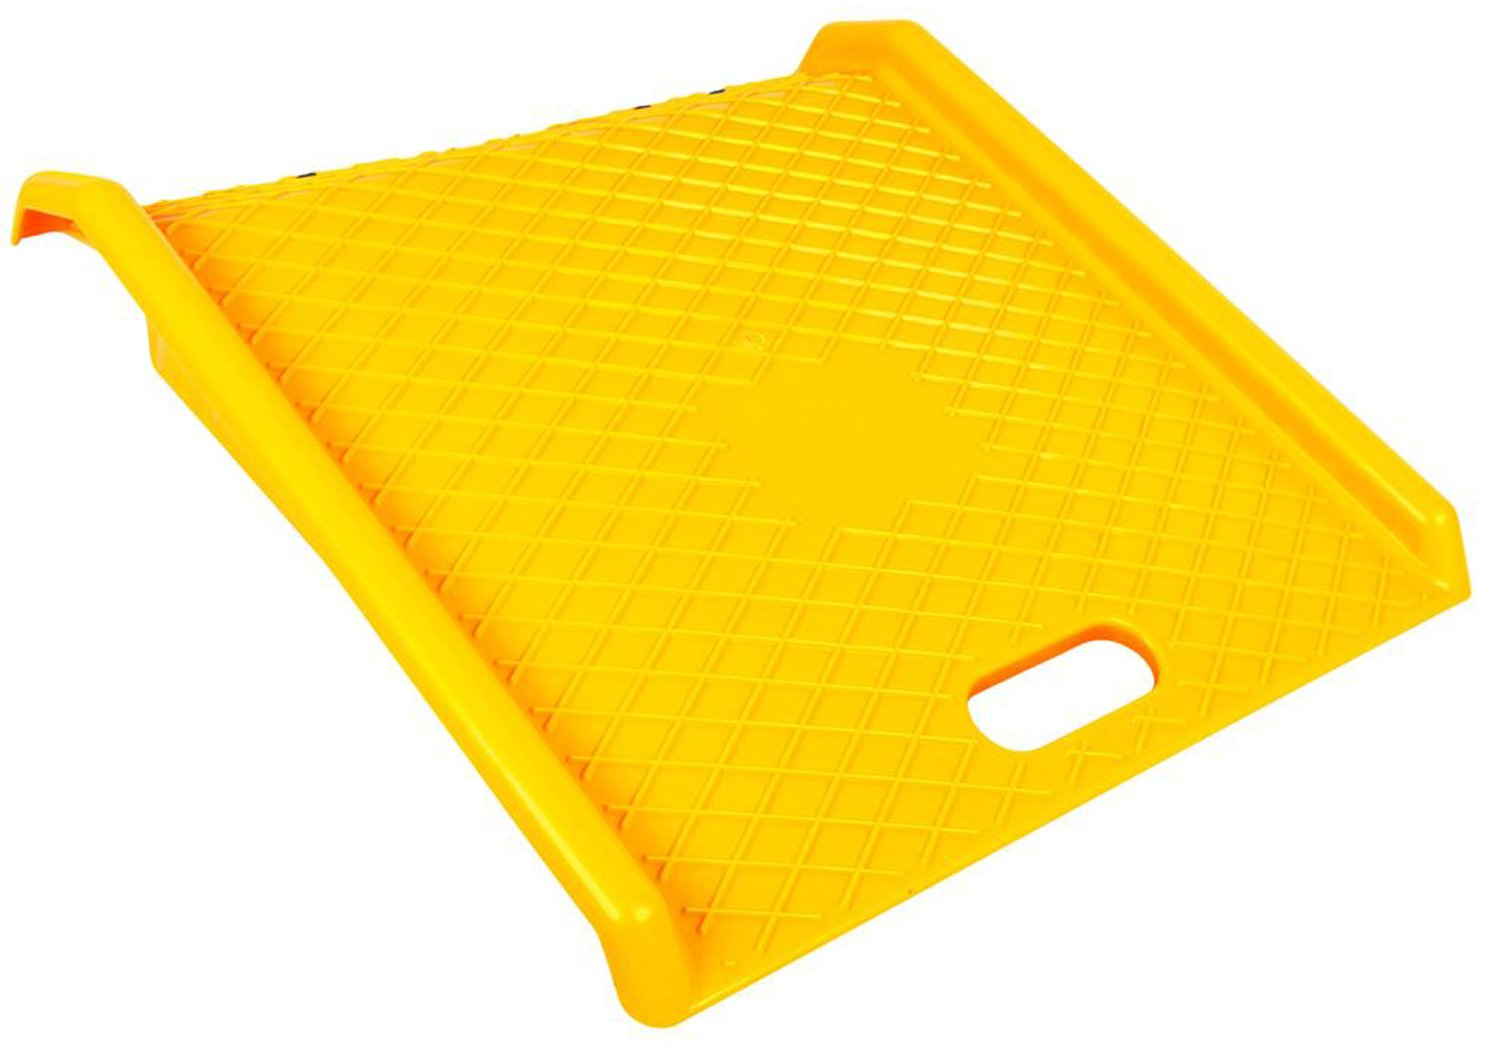 Curb Ramp - Heavy Duty 1000 Lbs Load Capacity - Yellow High Density Polyethylene for Hand Truck Delivery by BUNKERWALL (Image #1)